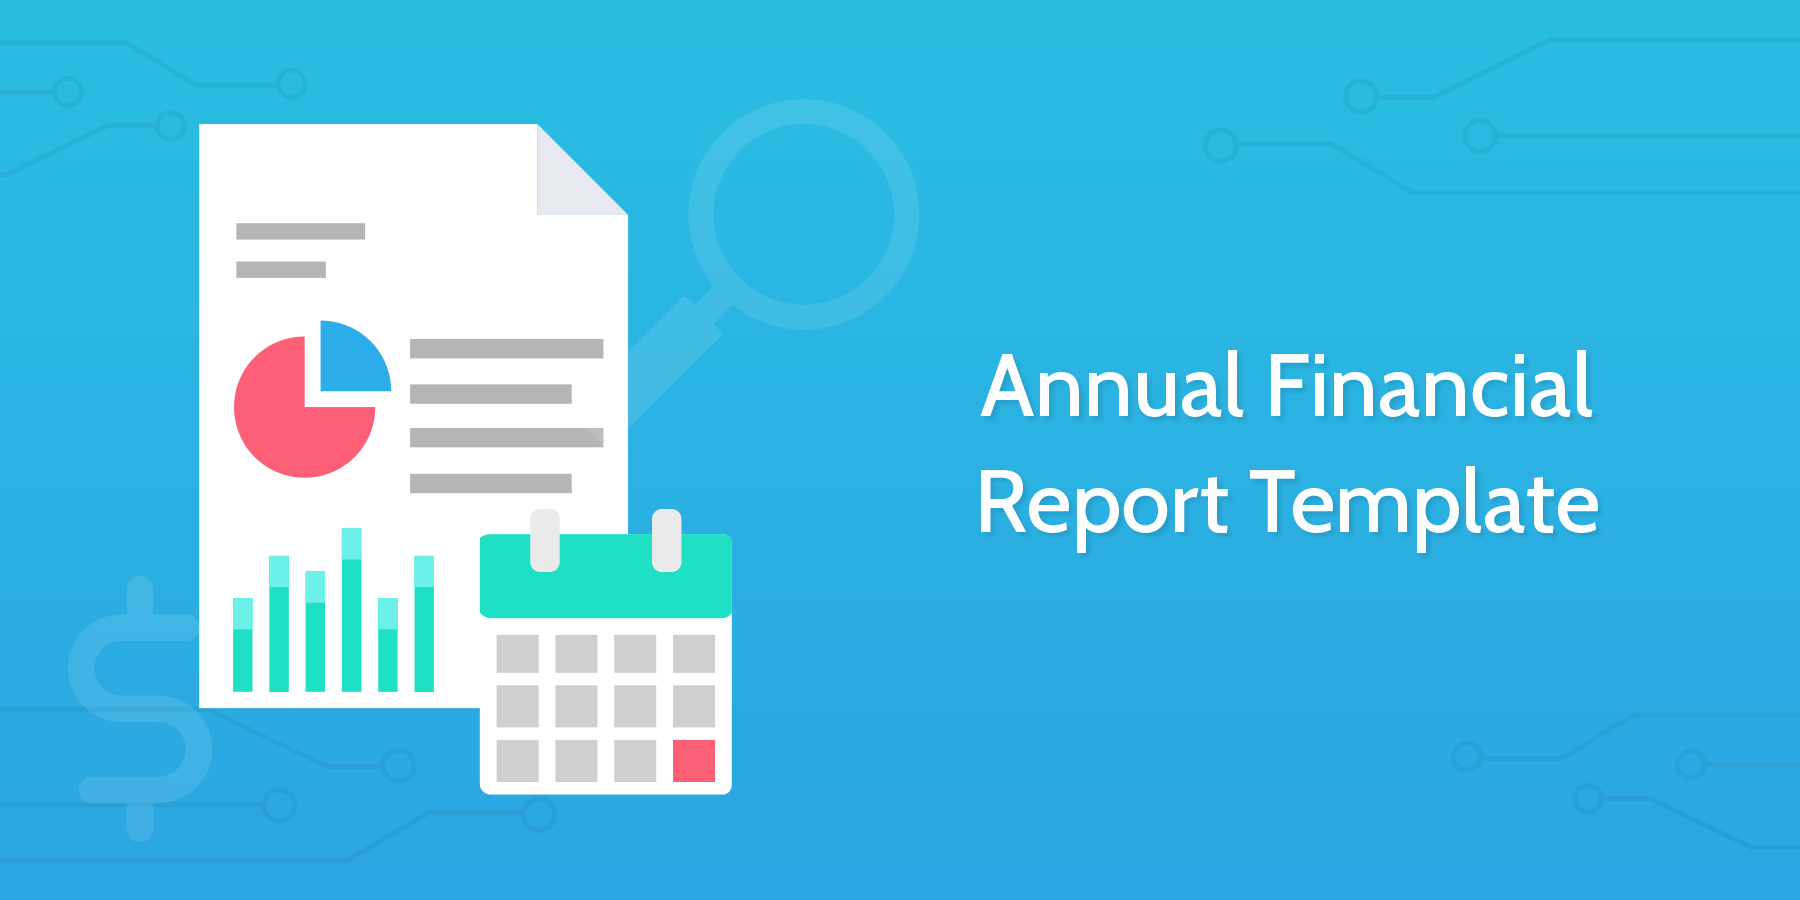 Introduction To Annual Financial Report: Annual Financial Report Template  Annual Financial Report Template